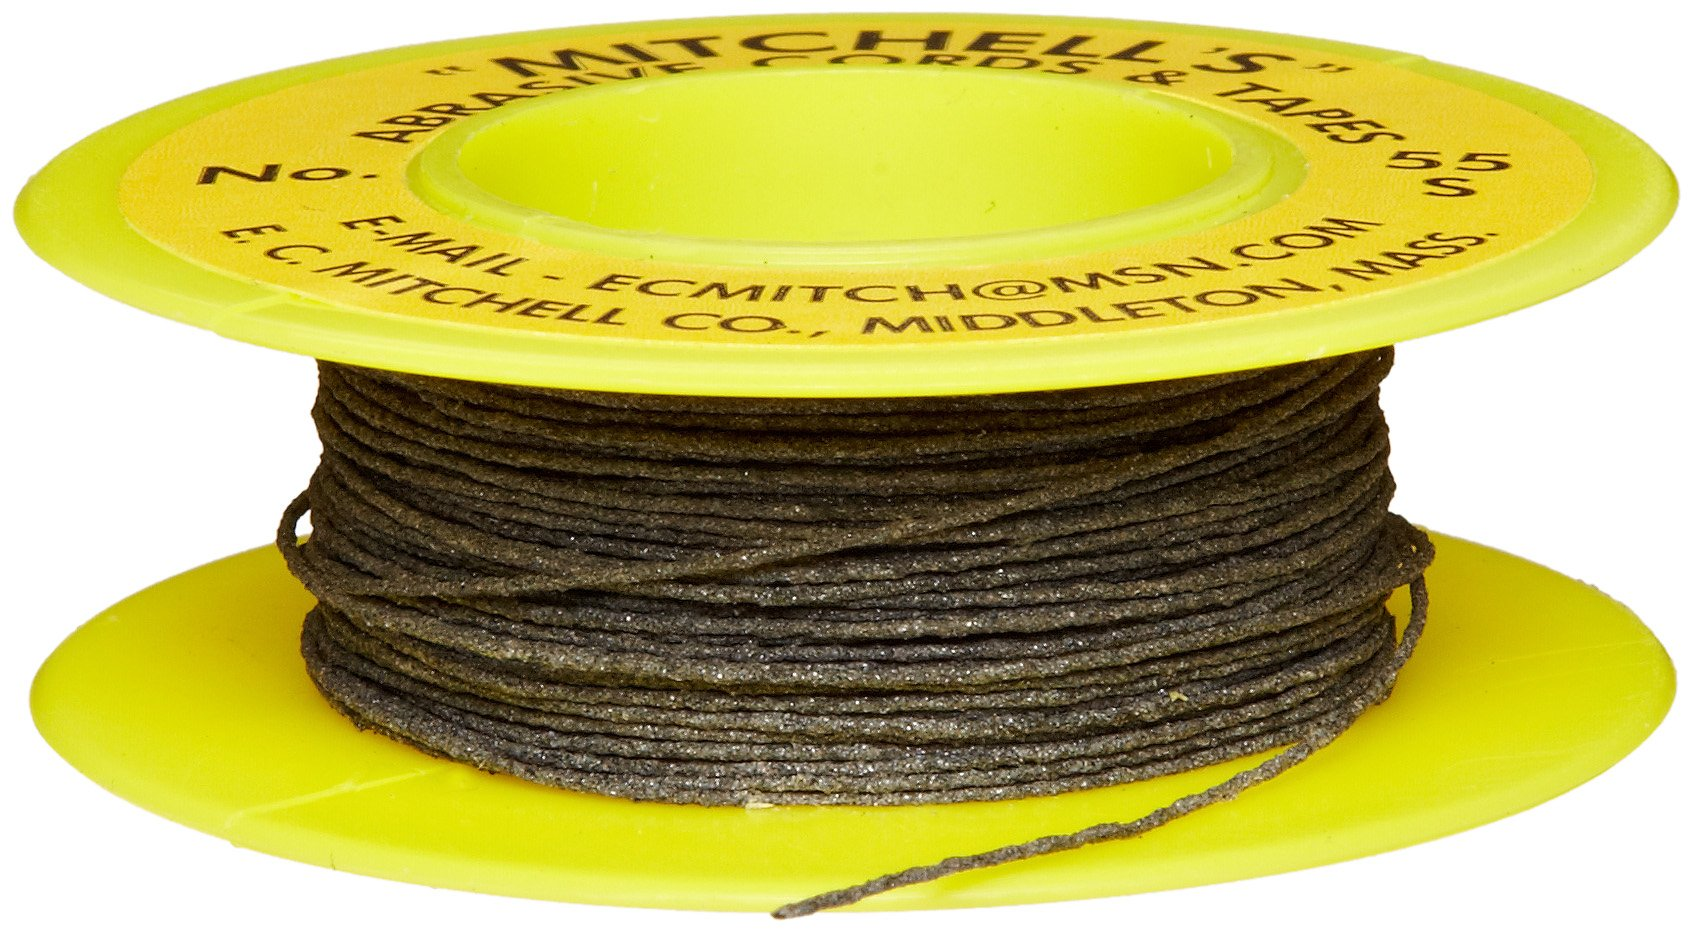 Mitchell Abrasives 55-S Round Abrasive Cord, Silicon Carbide 200 Grit .018'' Diameter x 50 Feet